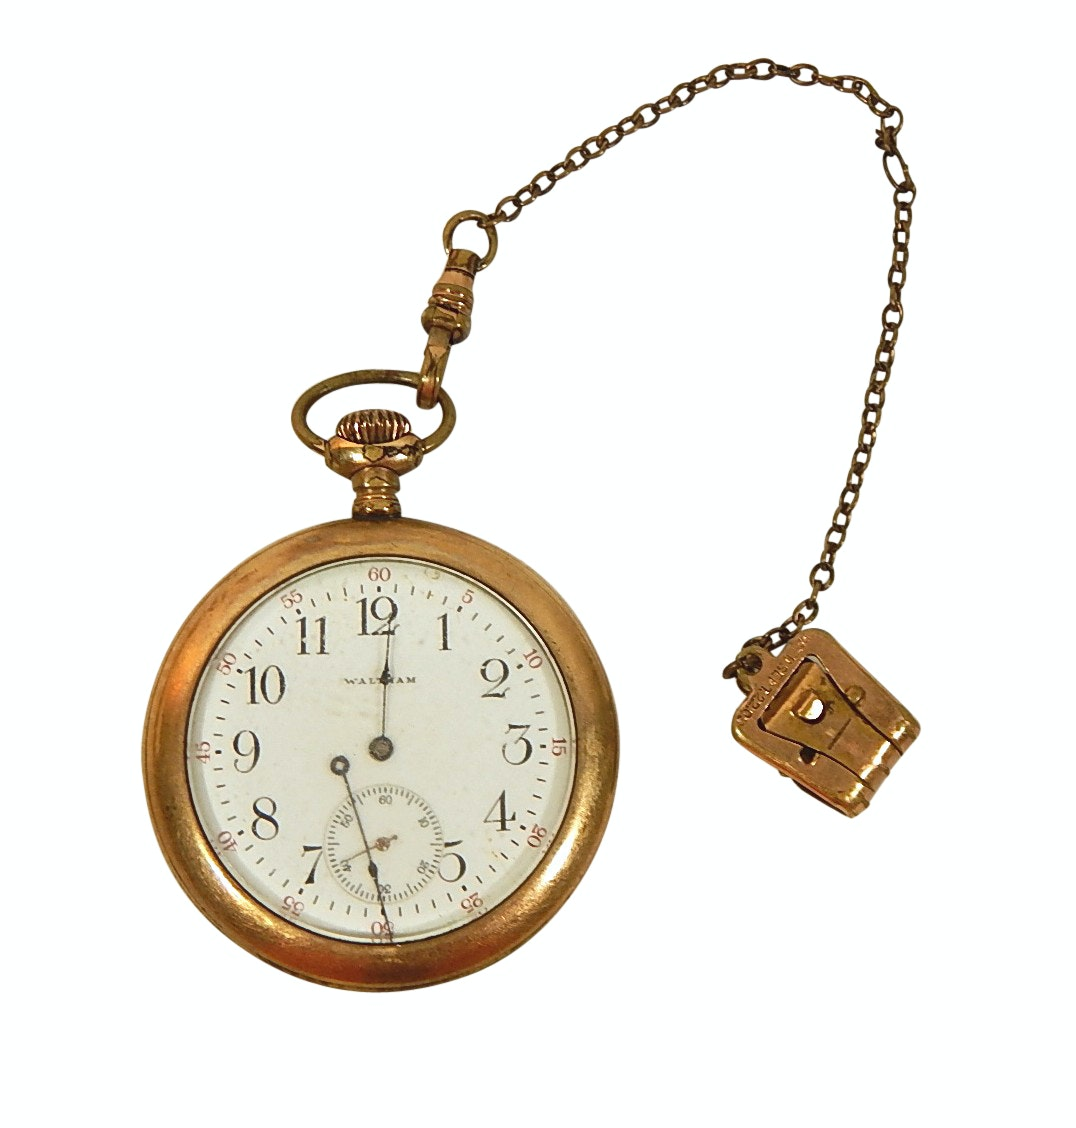 c 1912 Waltham Gold-Tone Pocket Watch and Chain Fob - Repair